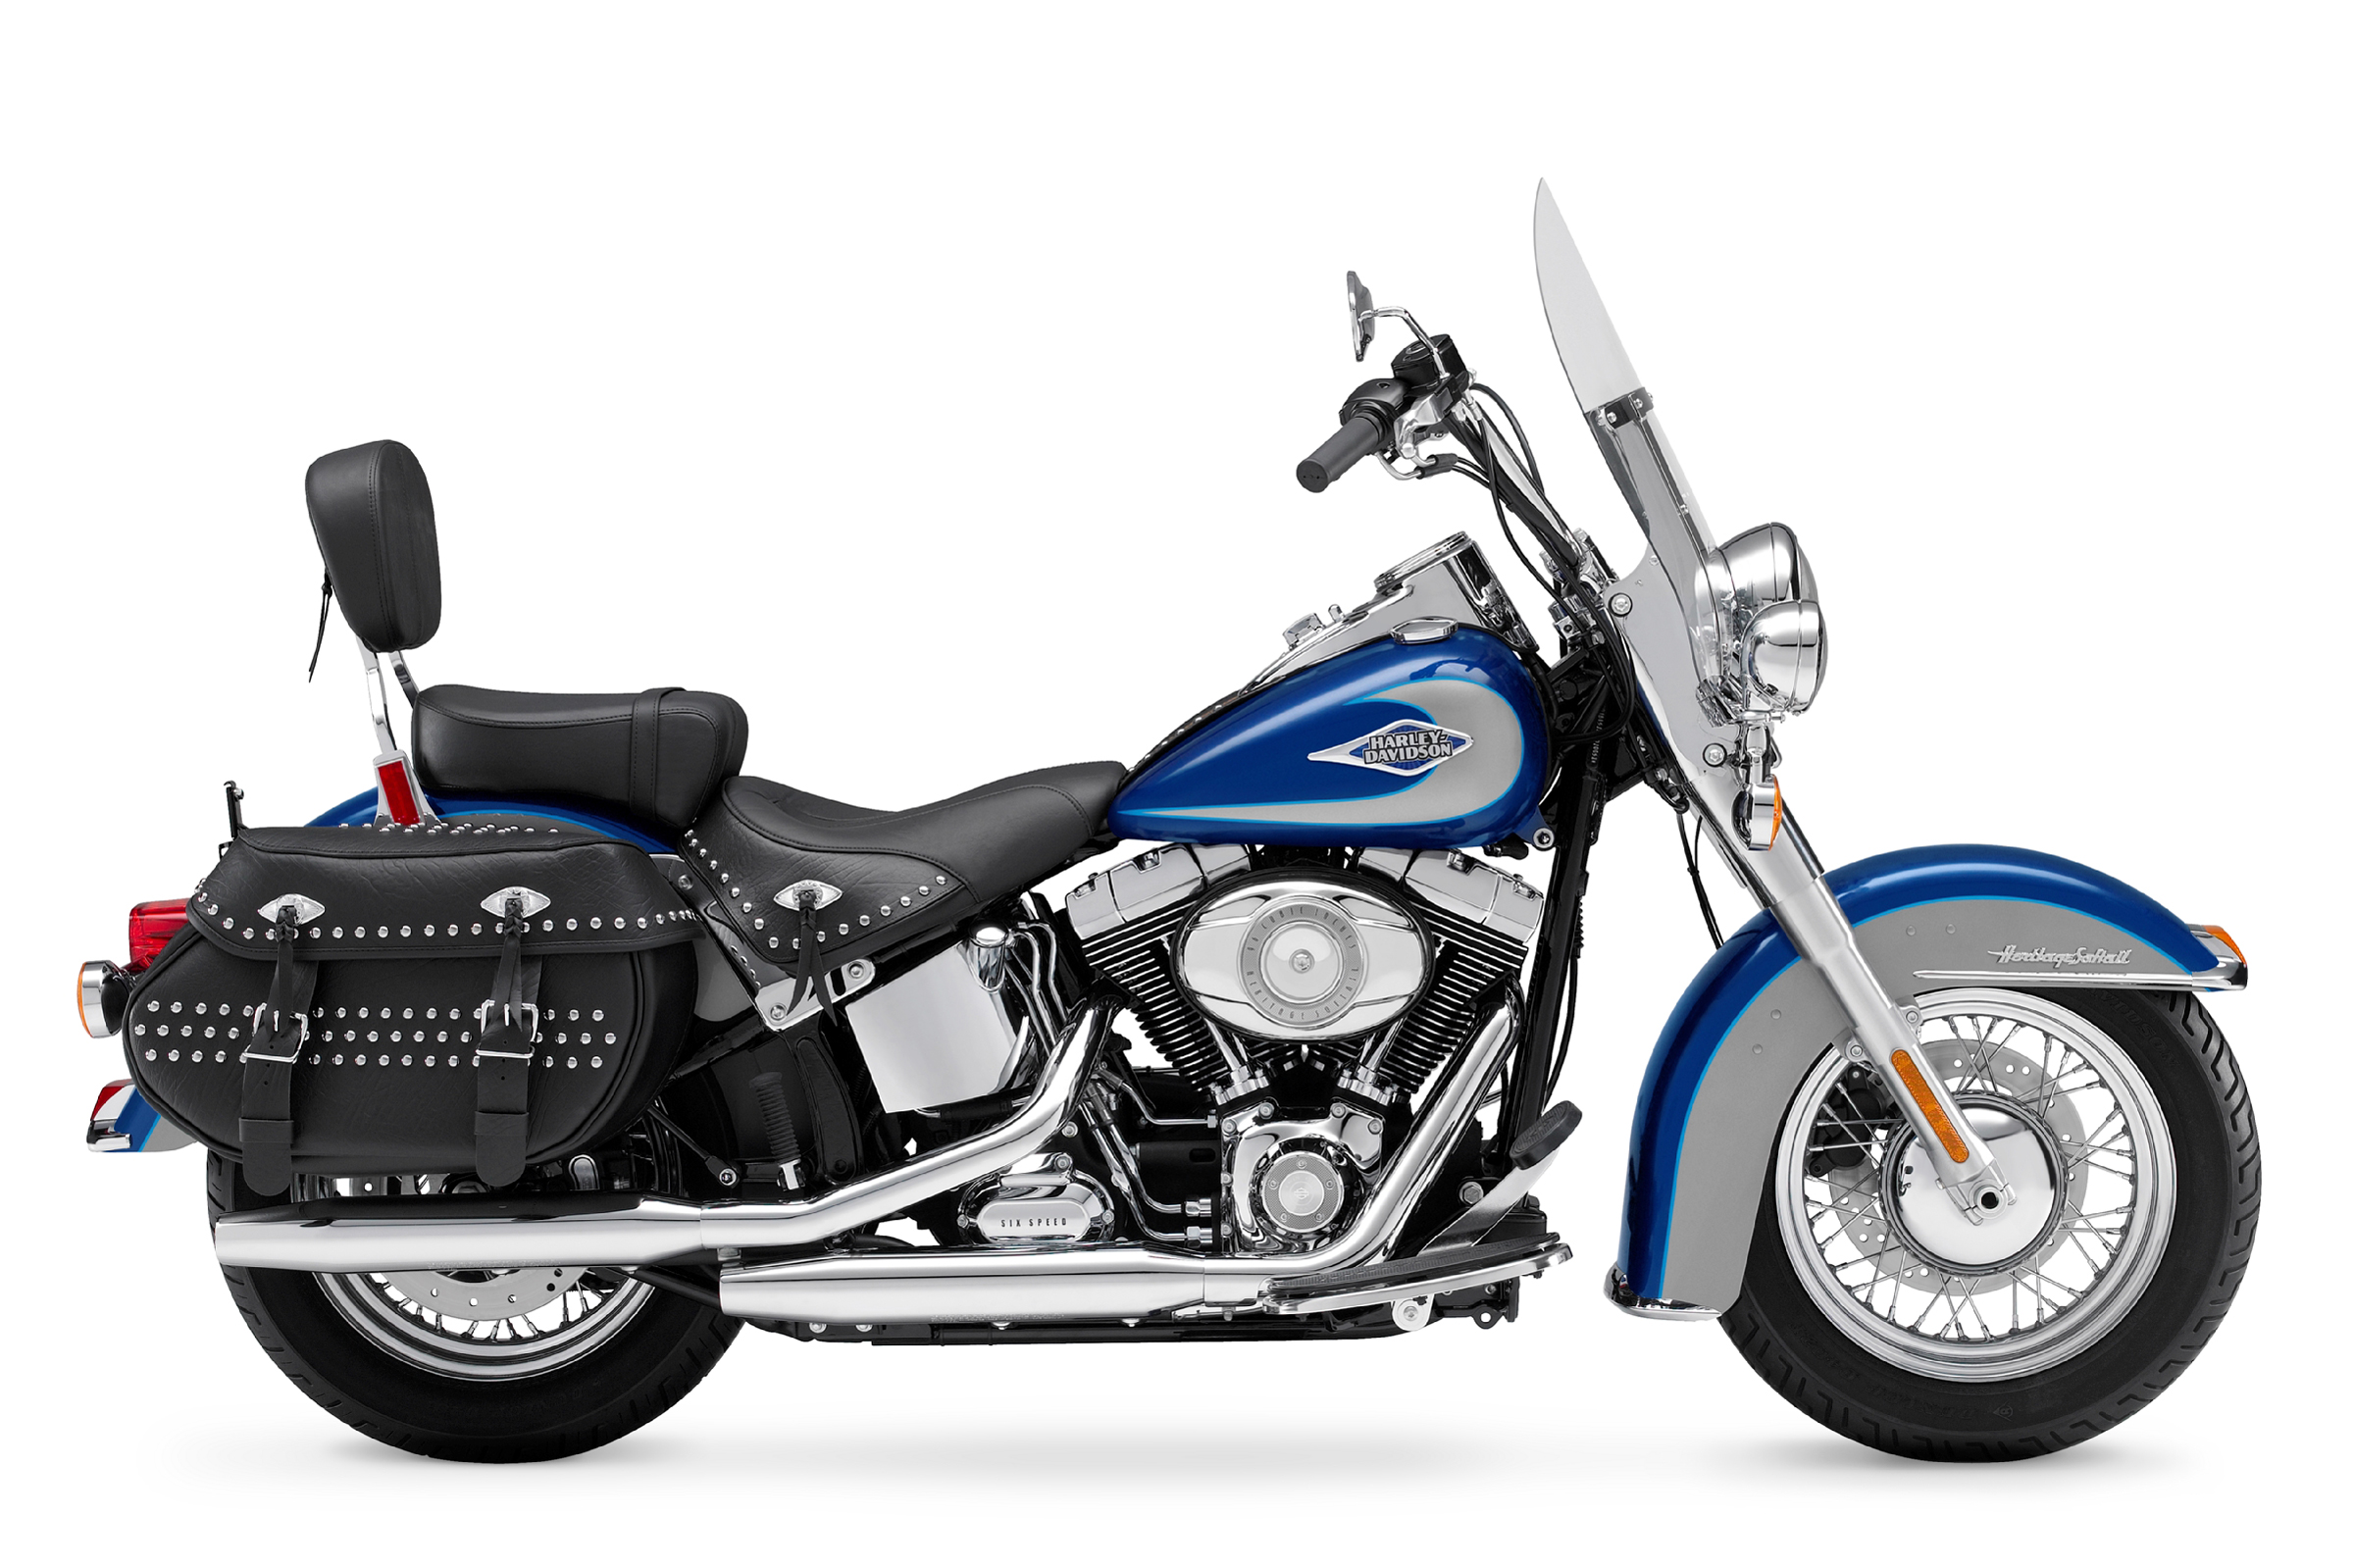 2009 Harley-Davidson FLSTC Heritage Softail Classic Review - Top Speed